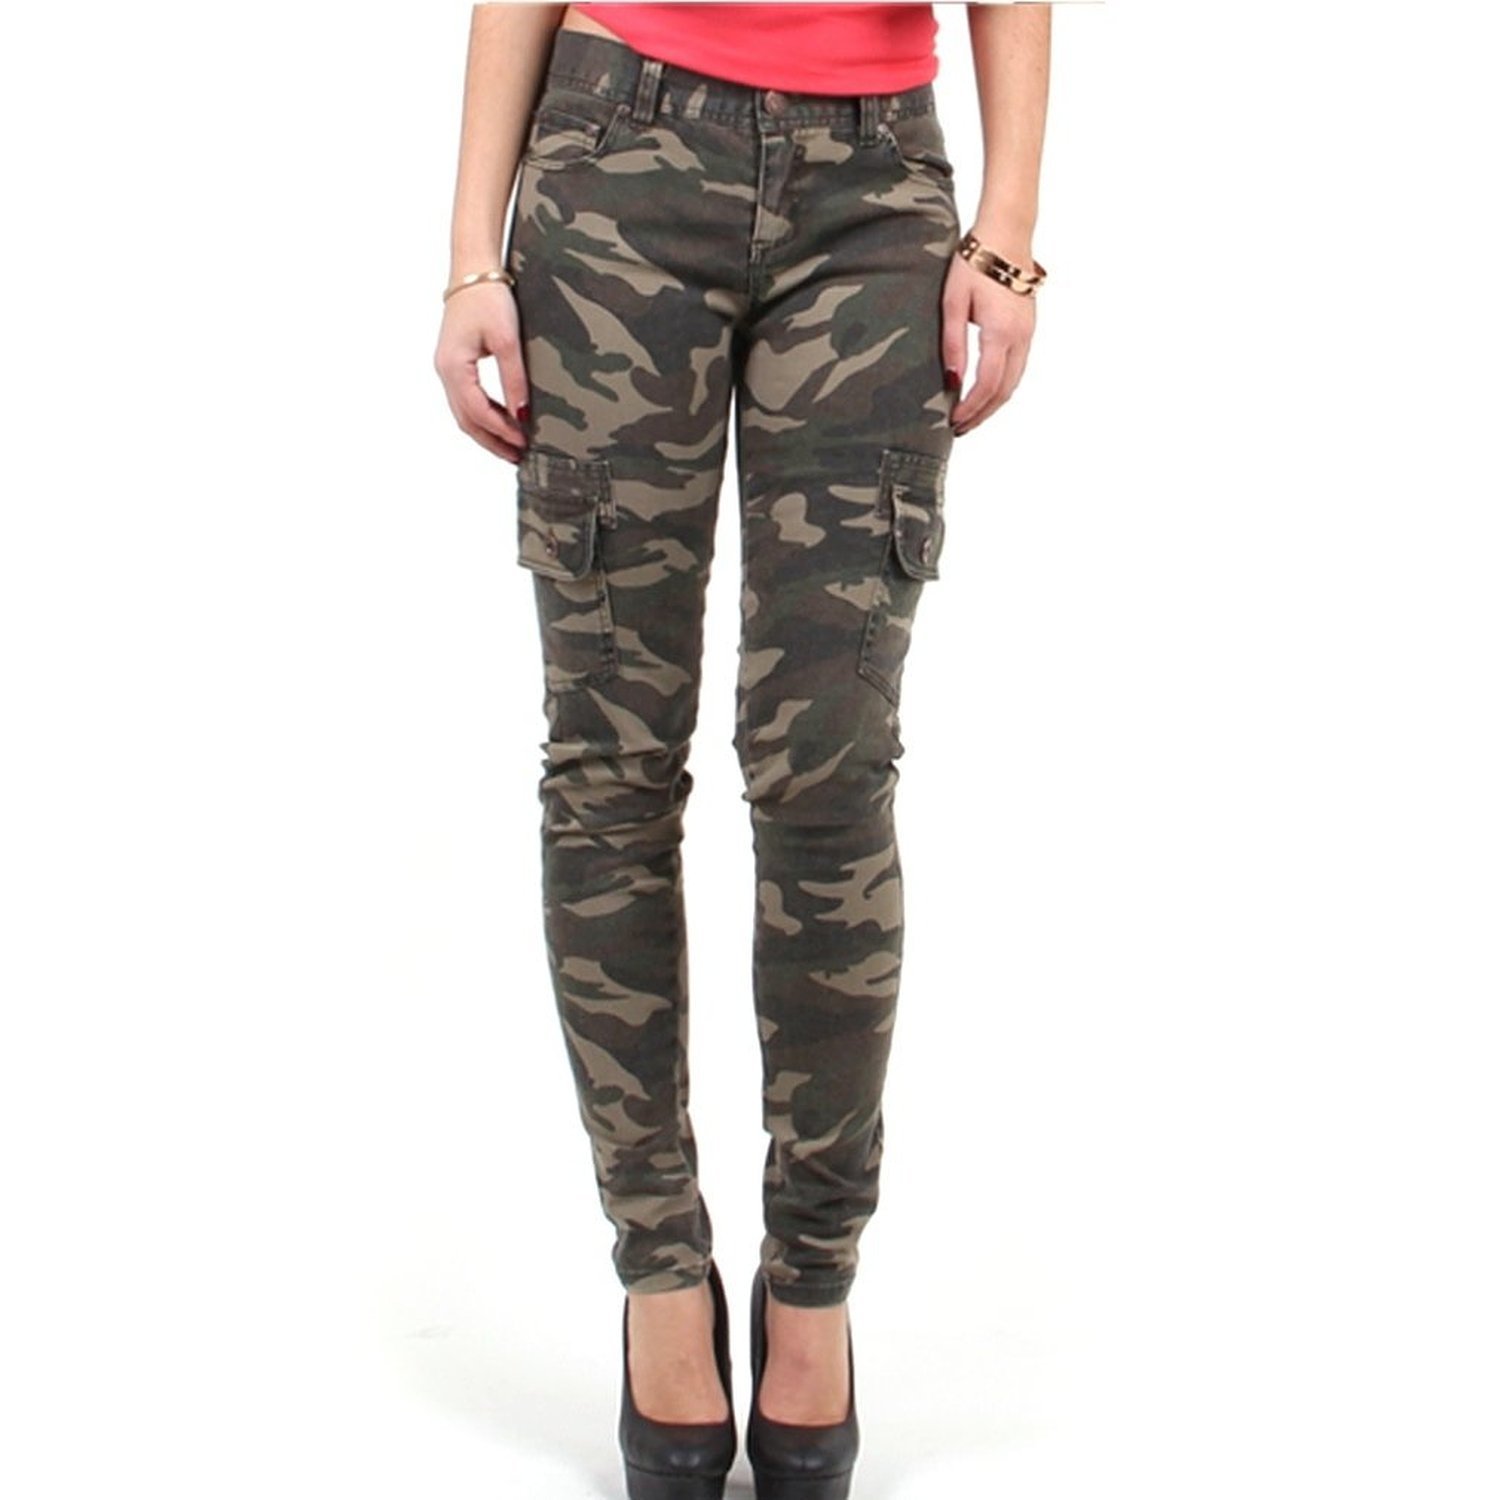 Simple  Camo Fashion On Pinterest  Camouflage Fashion Camouflage Pants And